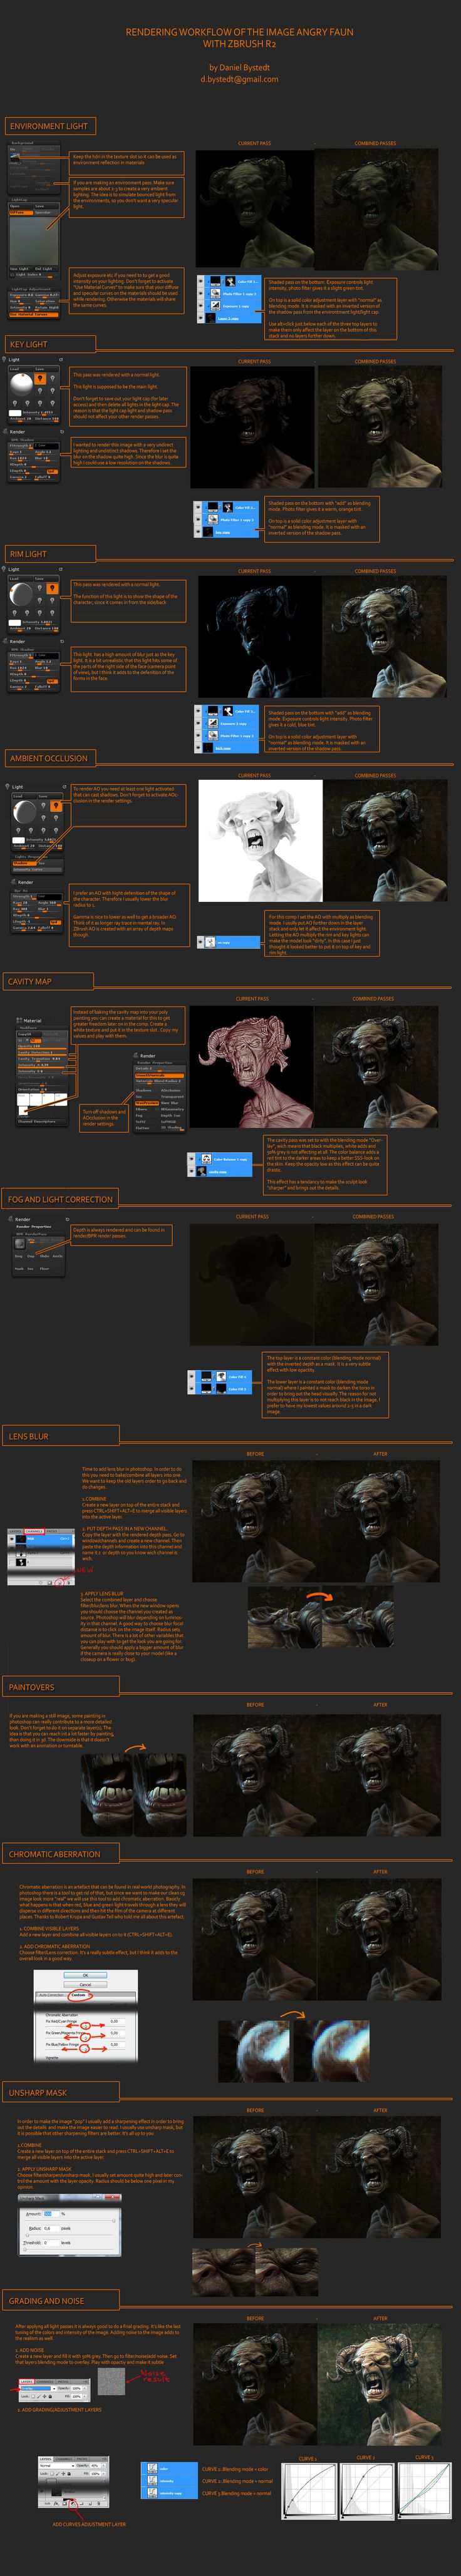 After posting the image Angry Faun on ZBrush Central I got a lot of questions about my render and comp workflow. This guide was written while I was using ZBrush 4 R2 and rendering with BPR Render. ...